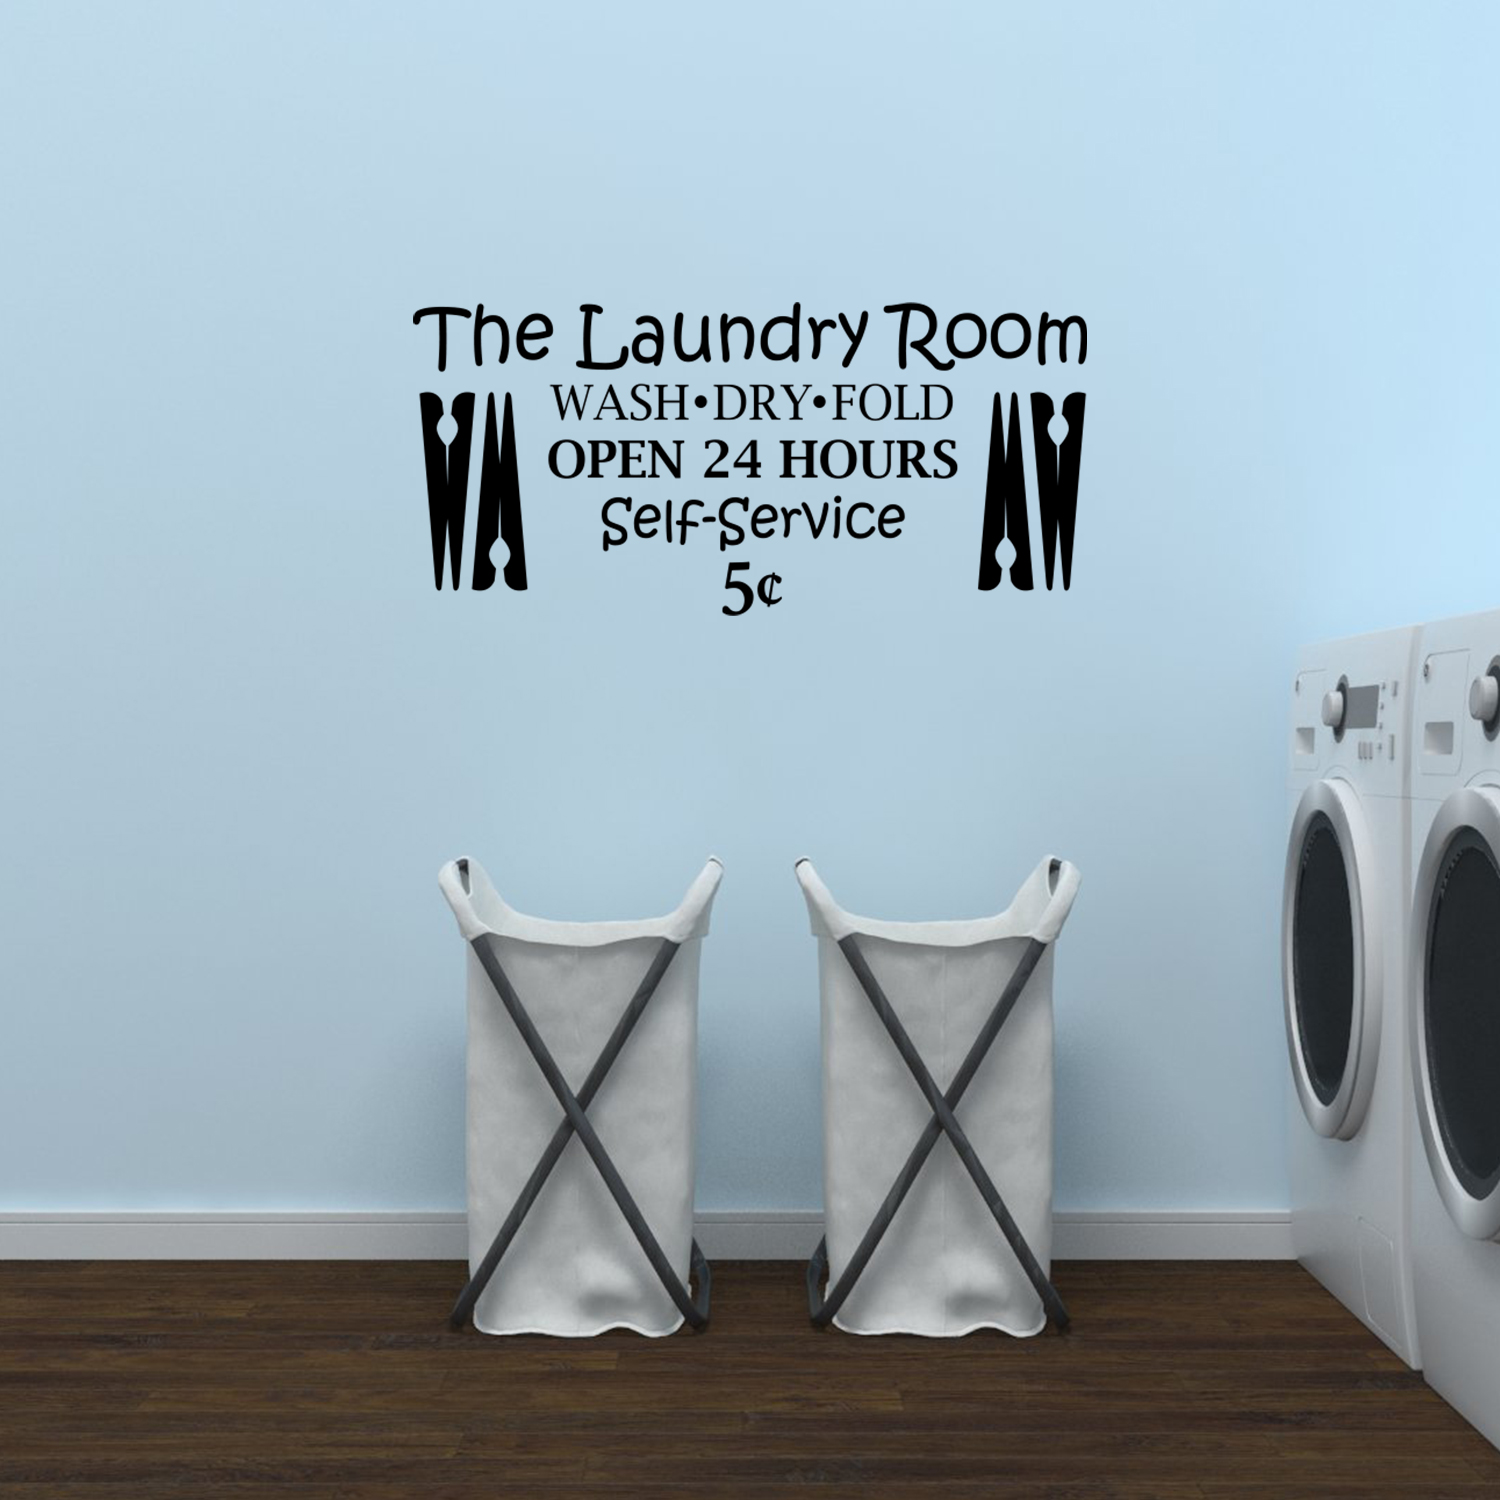 Laundry Room Wash Dry Fold Open 24 Hours Wall Decal Quote Laundry Wall Art Jm180 Walmart Com Walmart Com